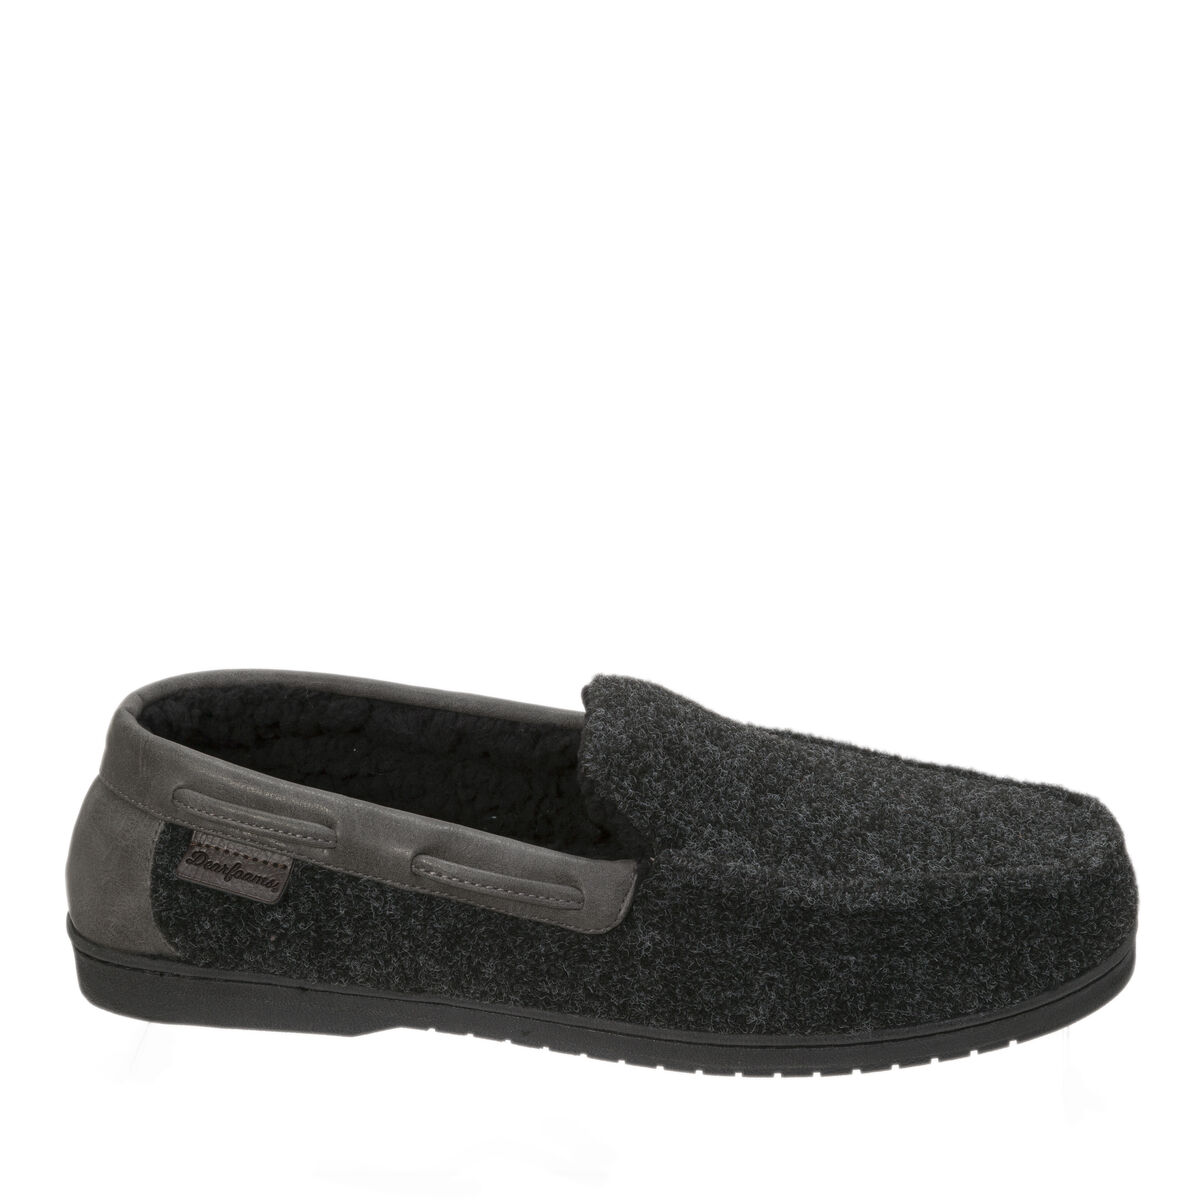 Men's Mixed Material Moccasin